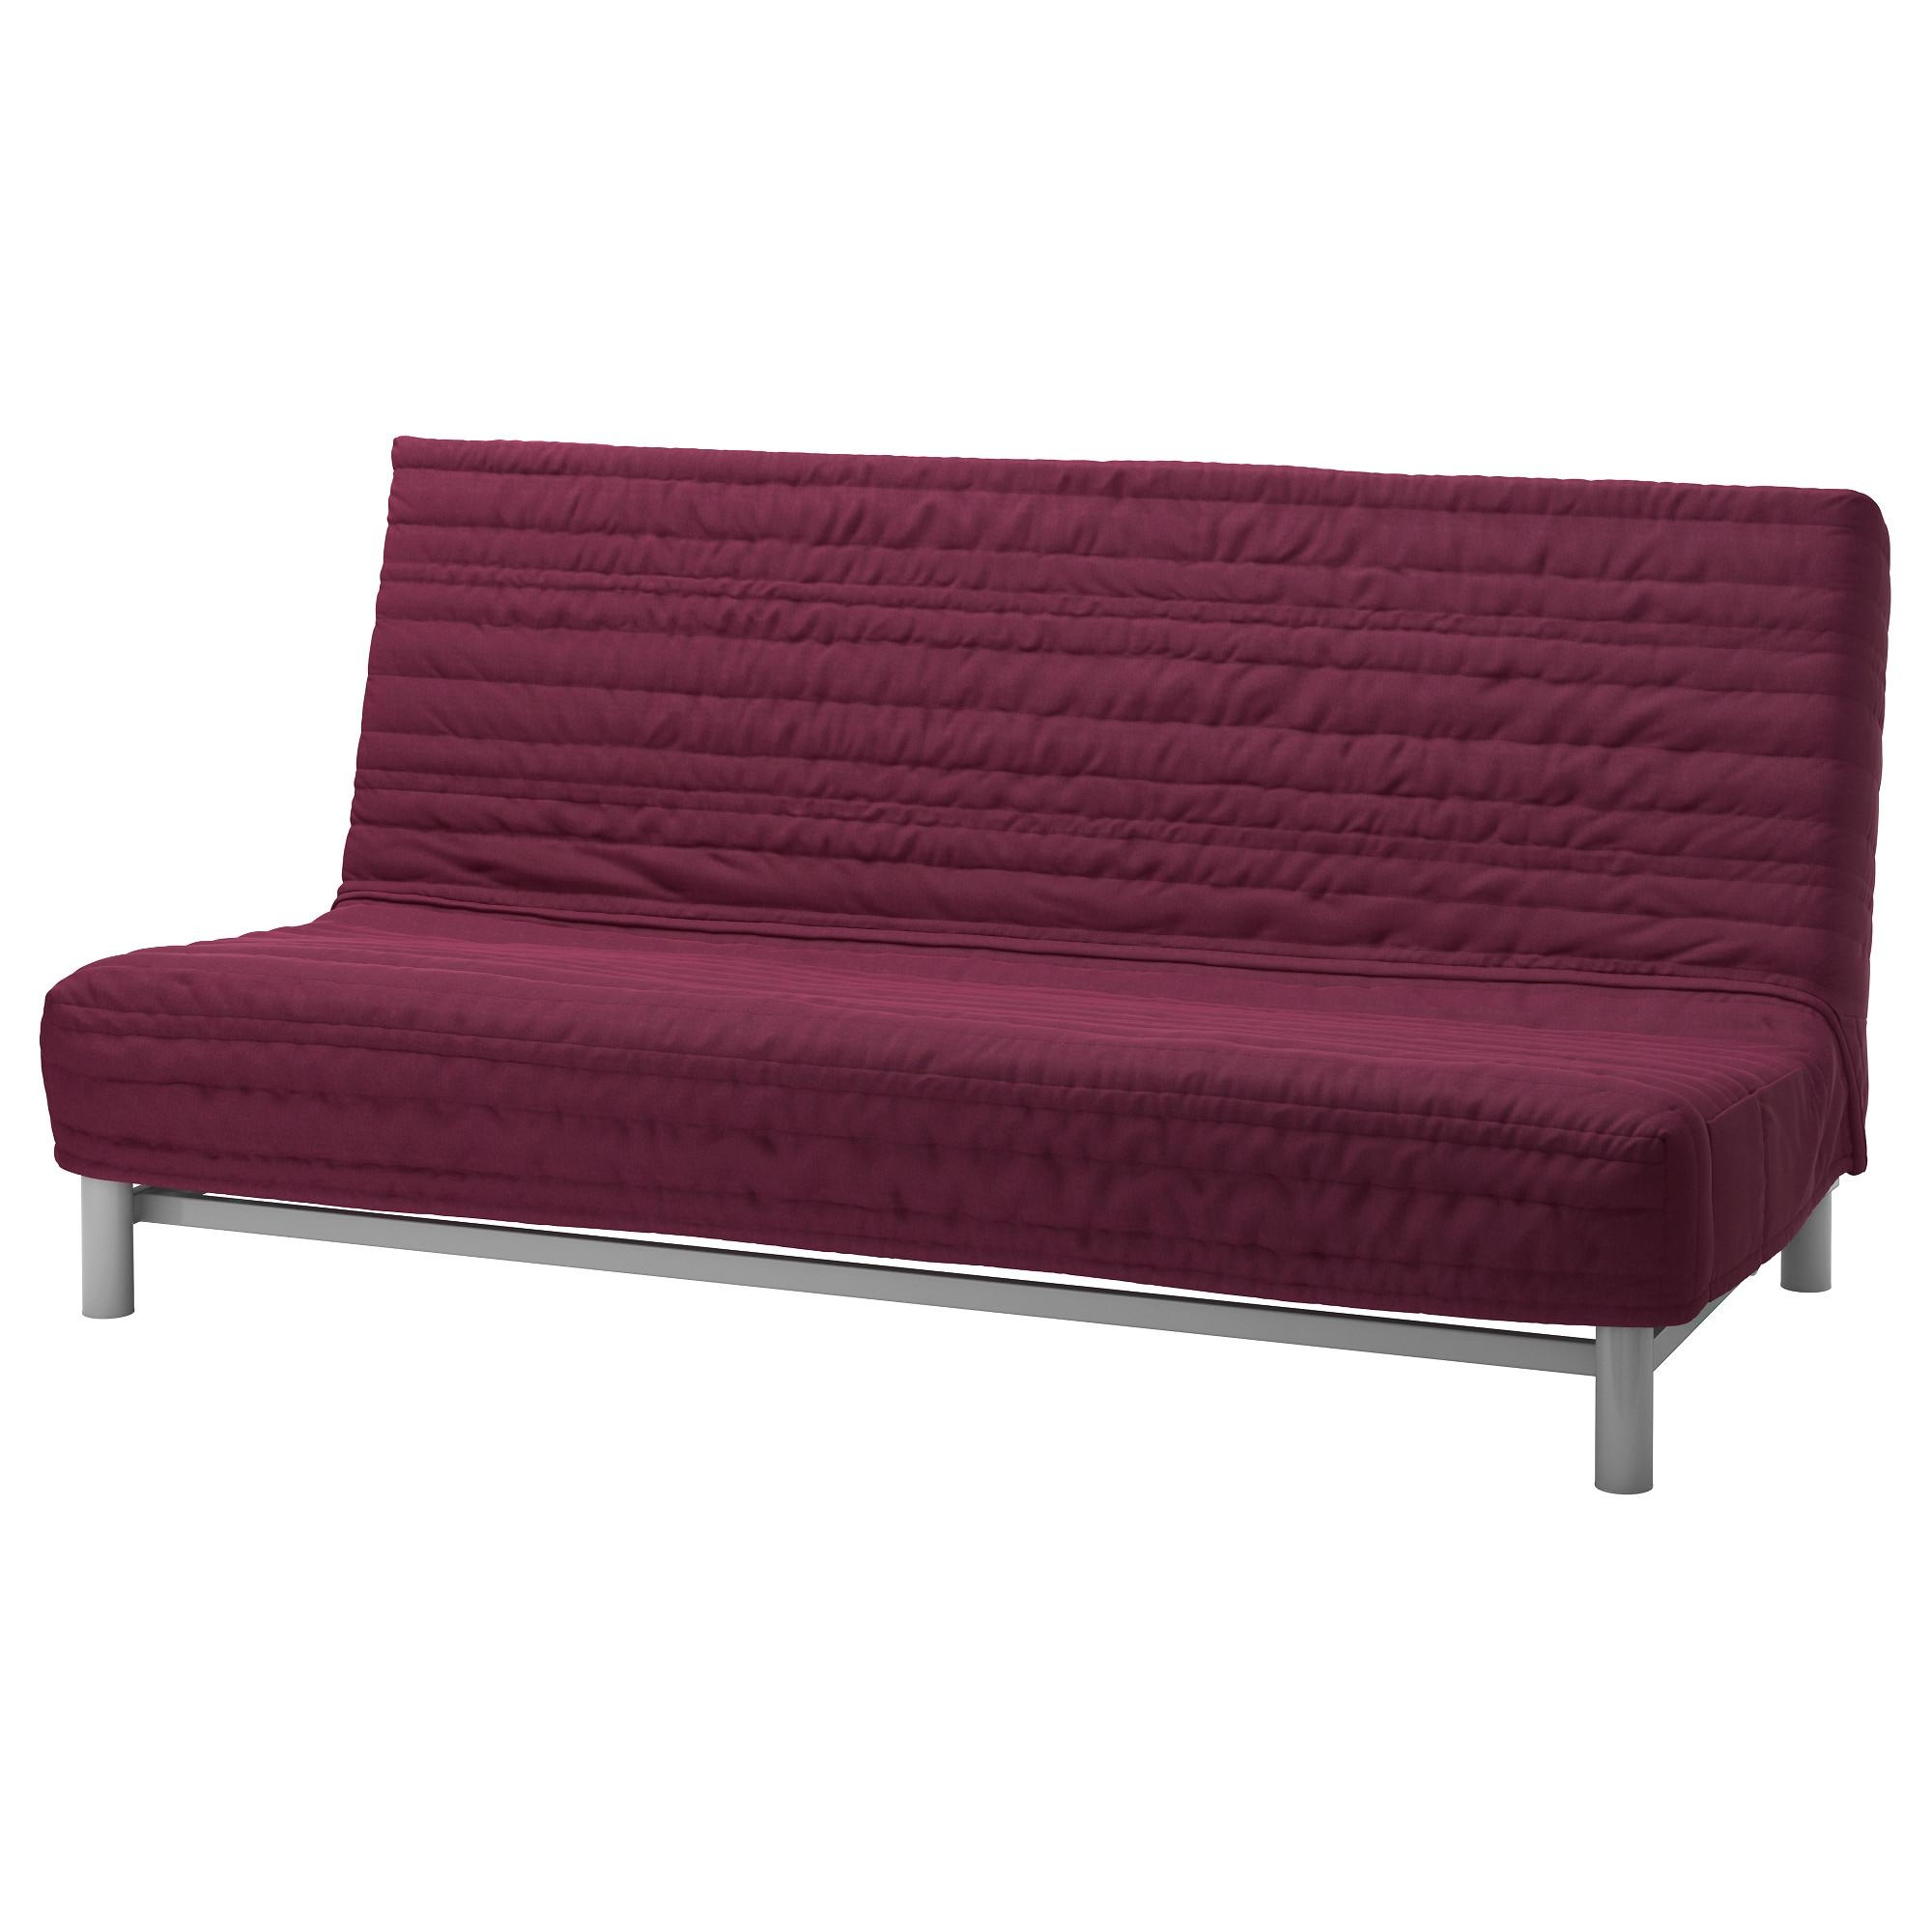 sofa beds cheap ikea loveseat bed for sale 20 photos single chairs ideas